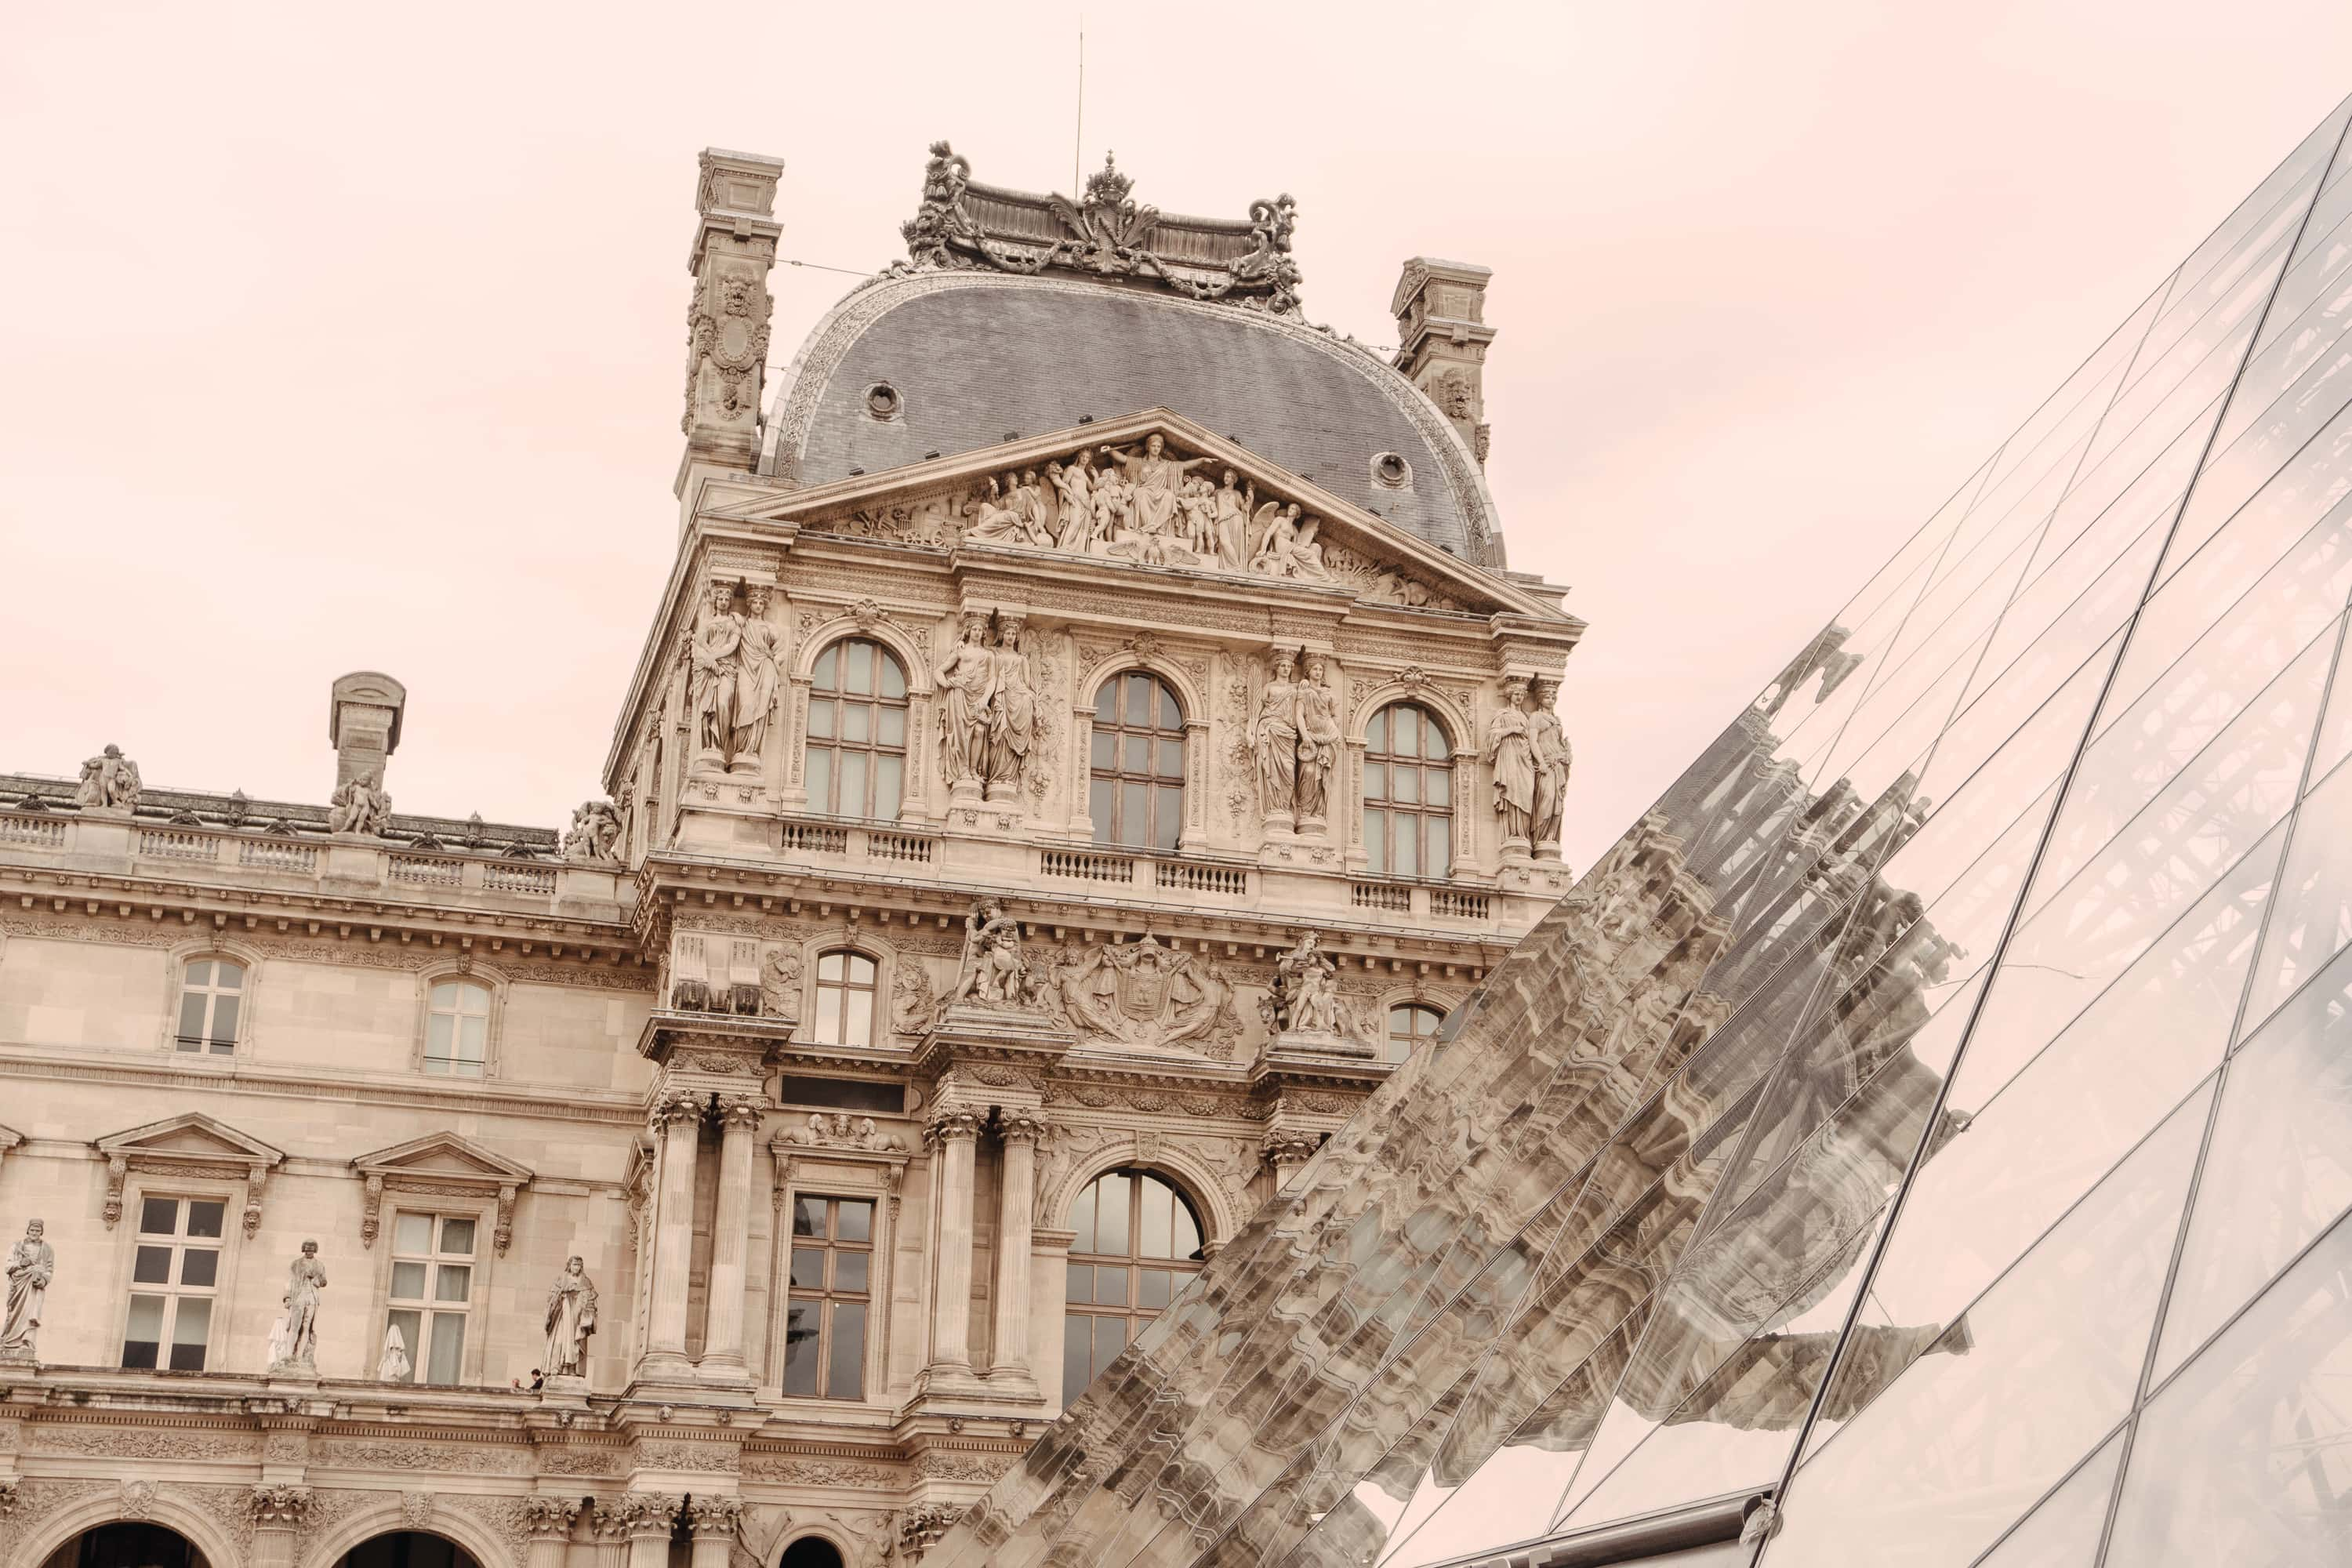 Reflection of the Louvre on glasswork pyramid